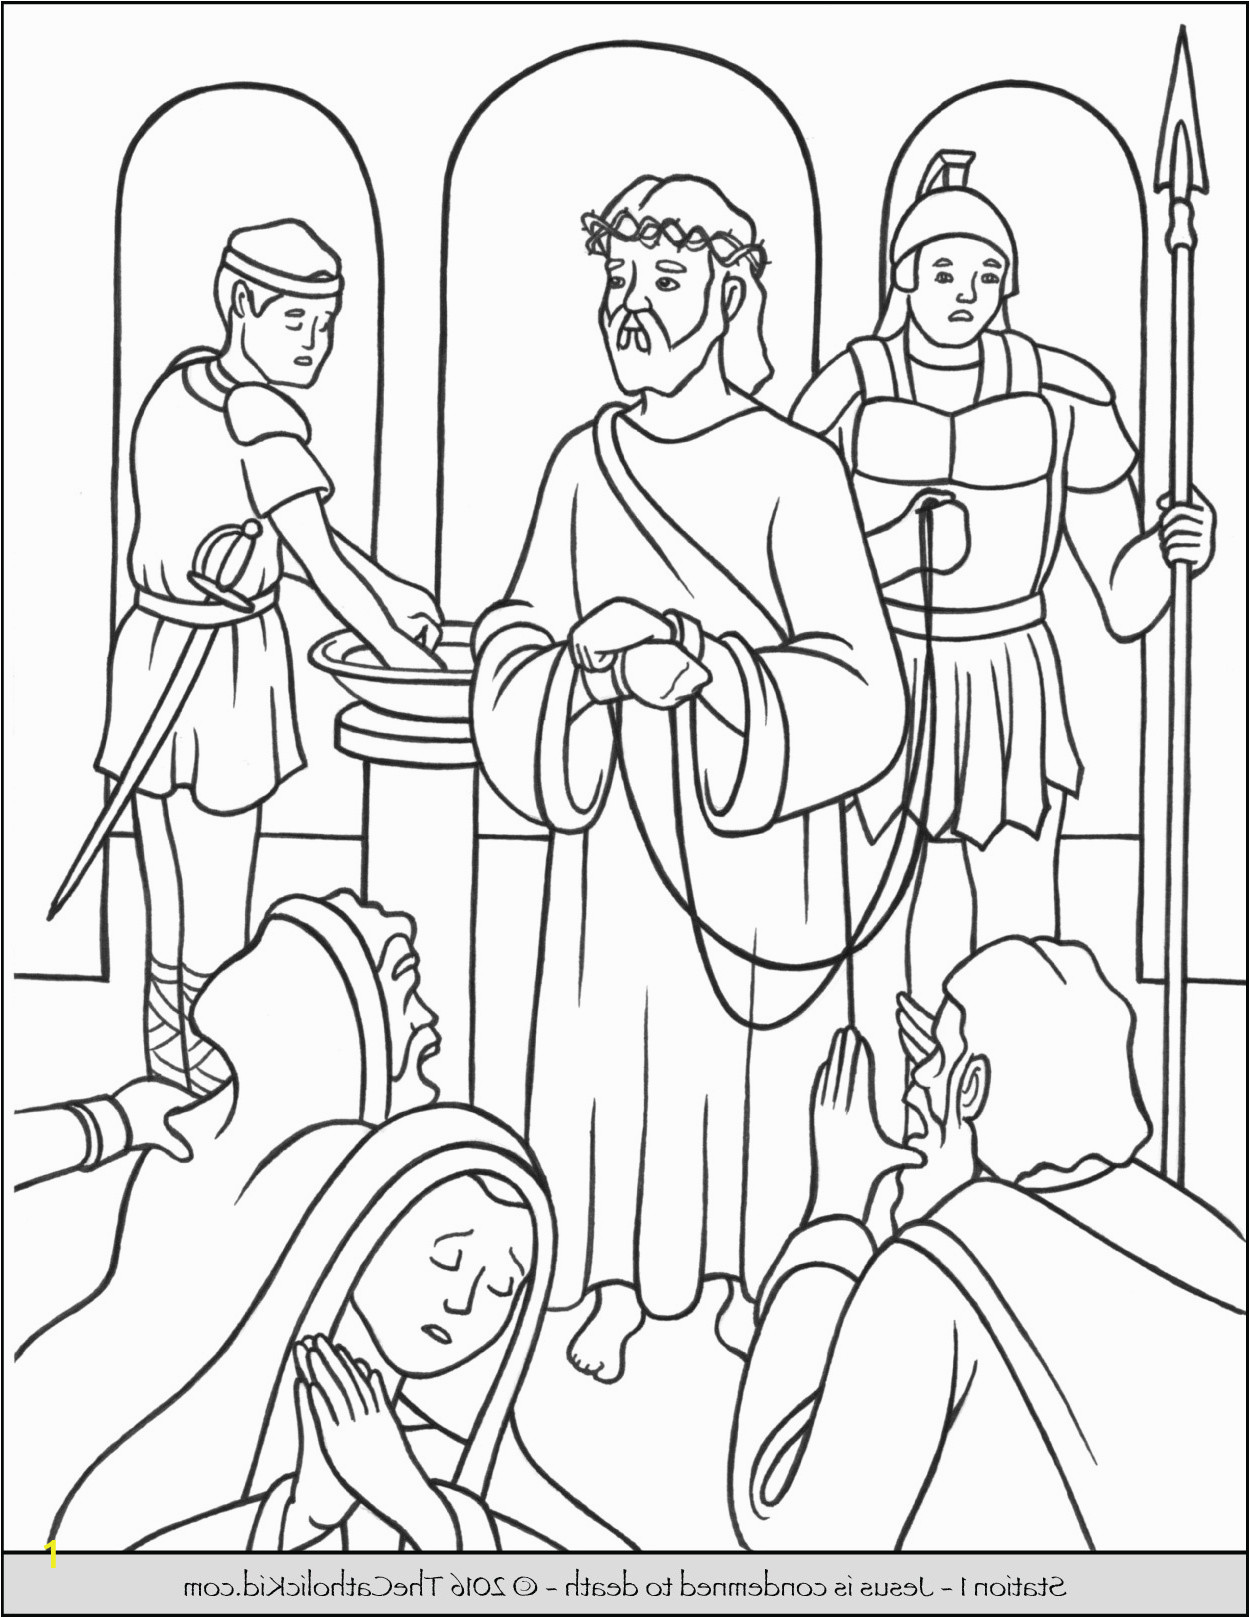 jesus healing the blind man coloring page awesome photos jesus the cross coloring page at drawings of jesus healing the blind man coloring page